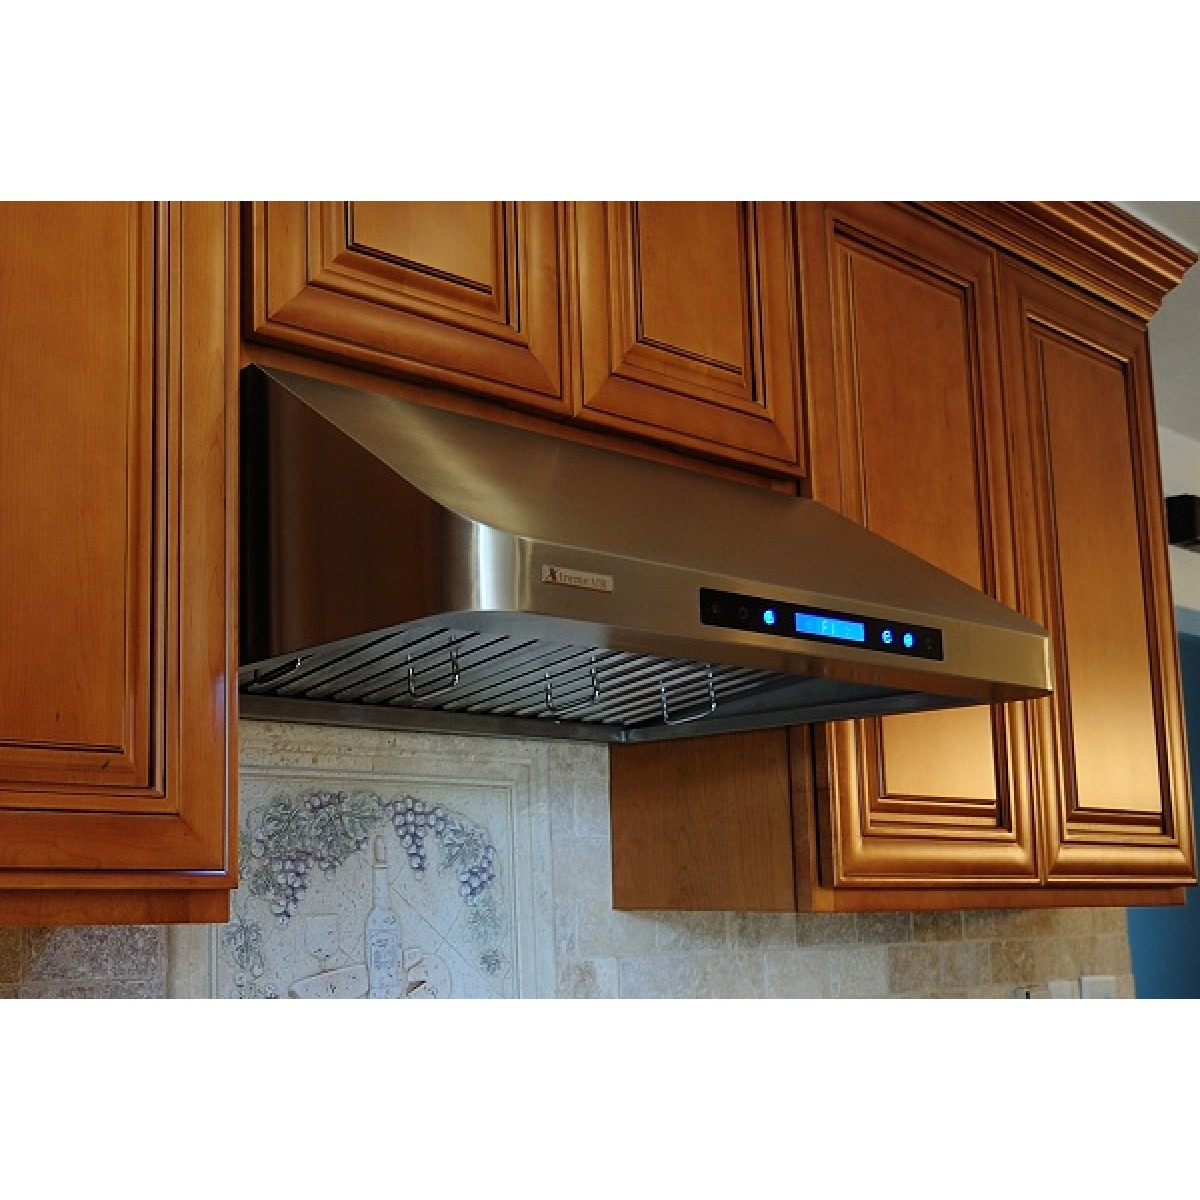 XtremeAIR 36 Inch Under Cabinet Stainless Steel Range Hood